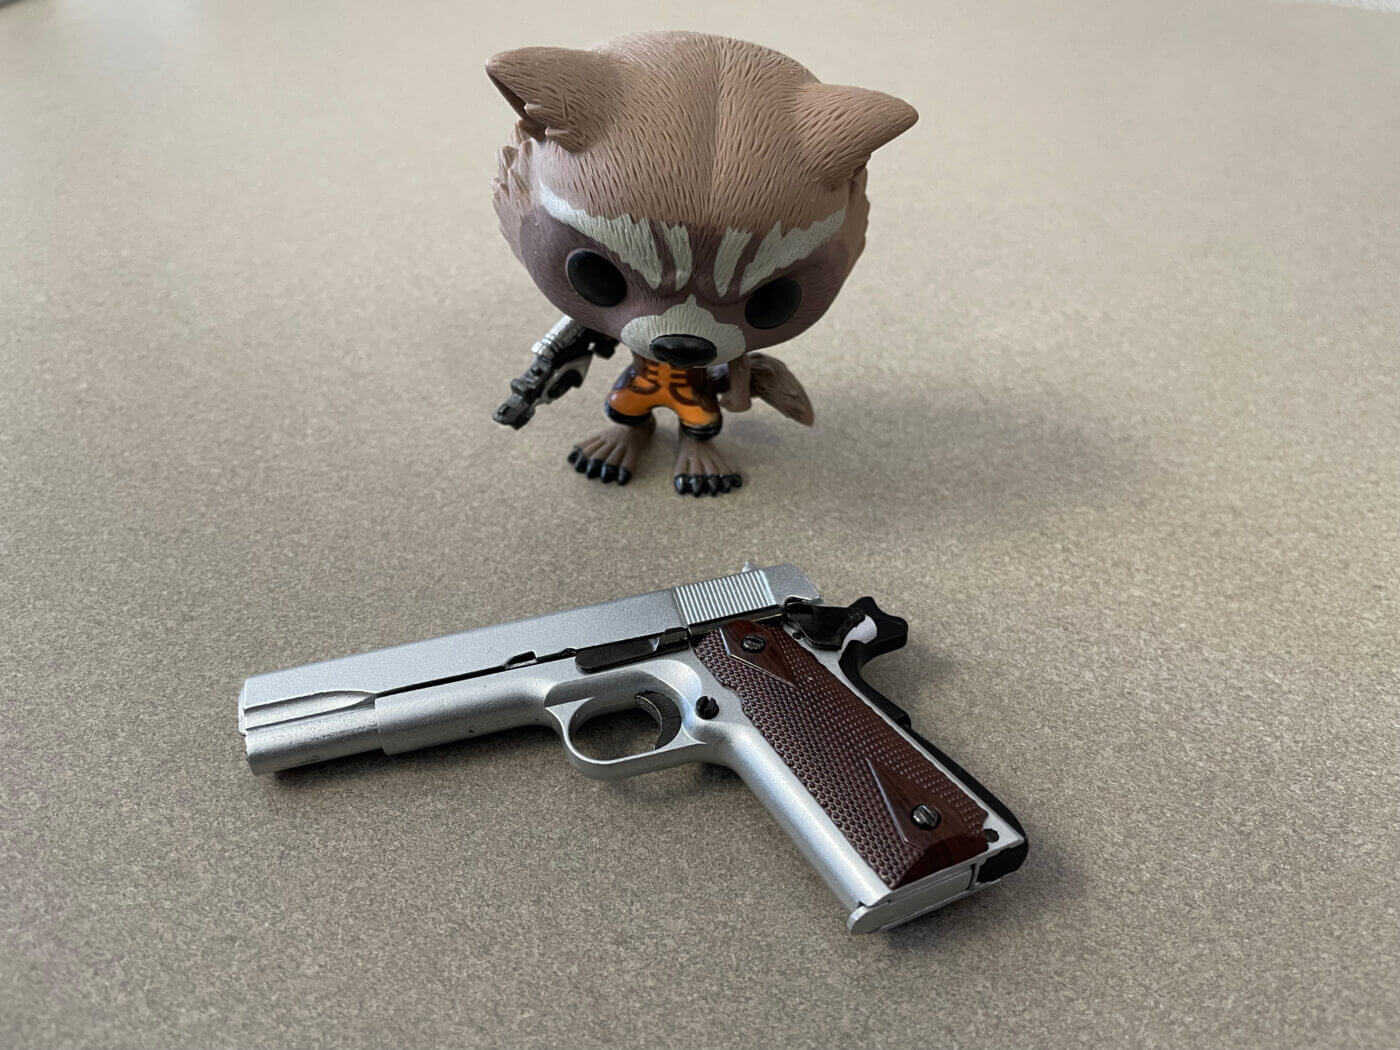 Rocket raccoon with 1911 from GoatGuns